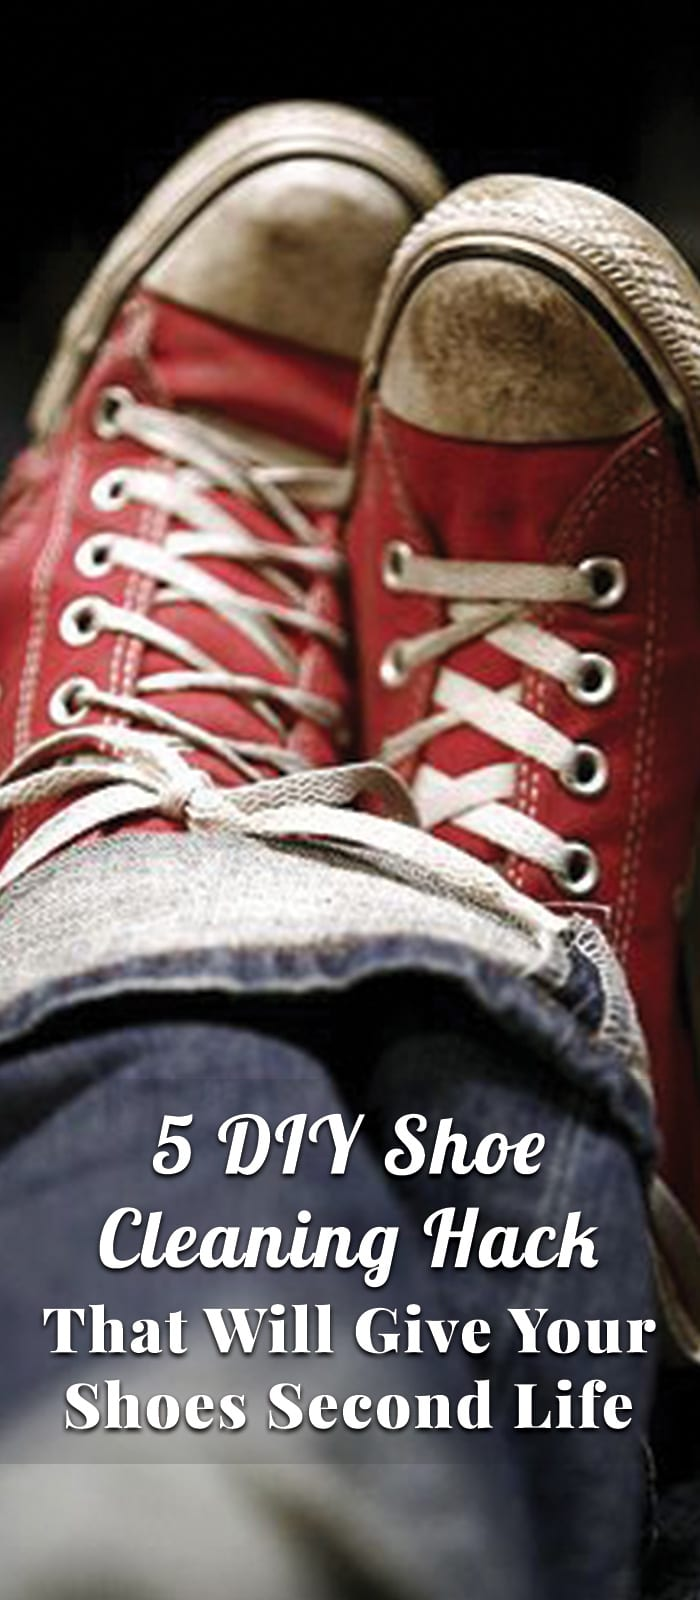 5 DIY Shoe Cleaning Hack That Will Give Your Shoes Second Life